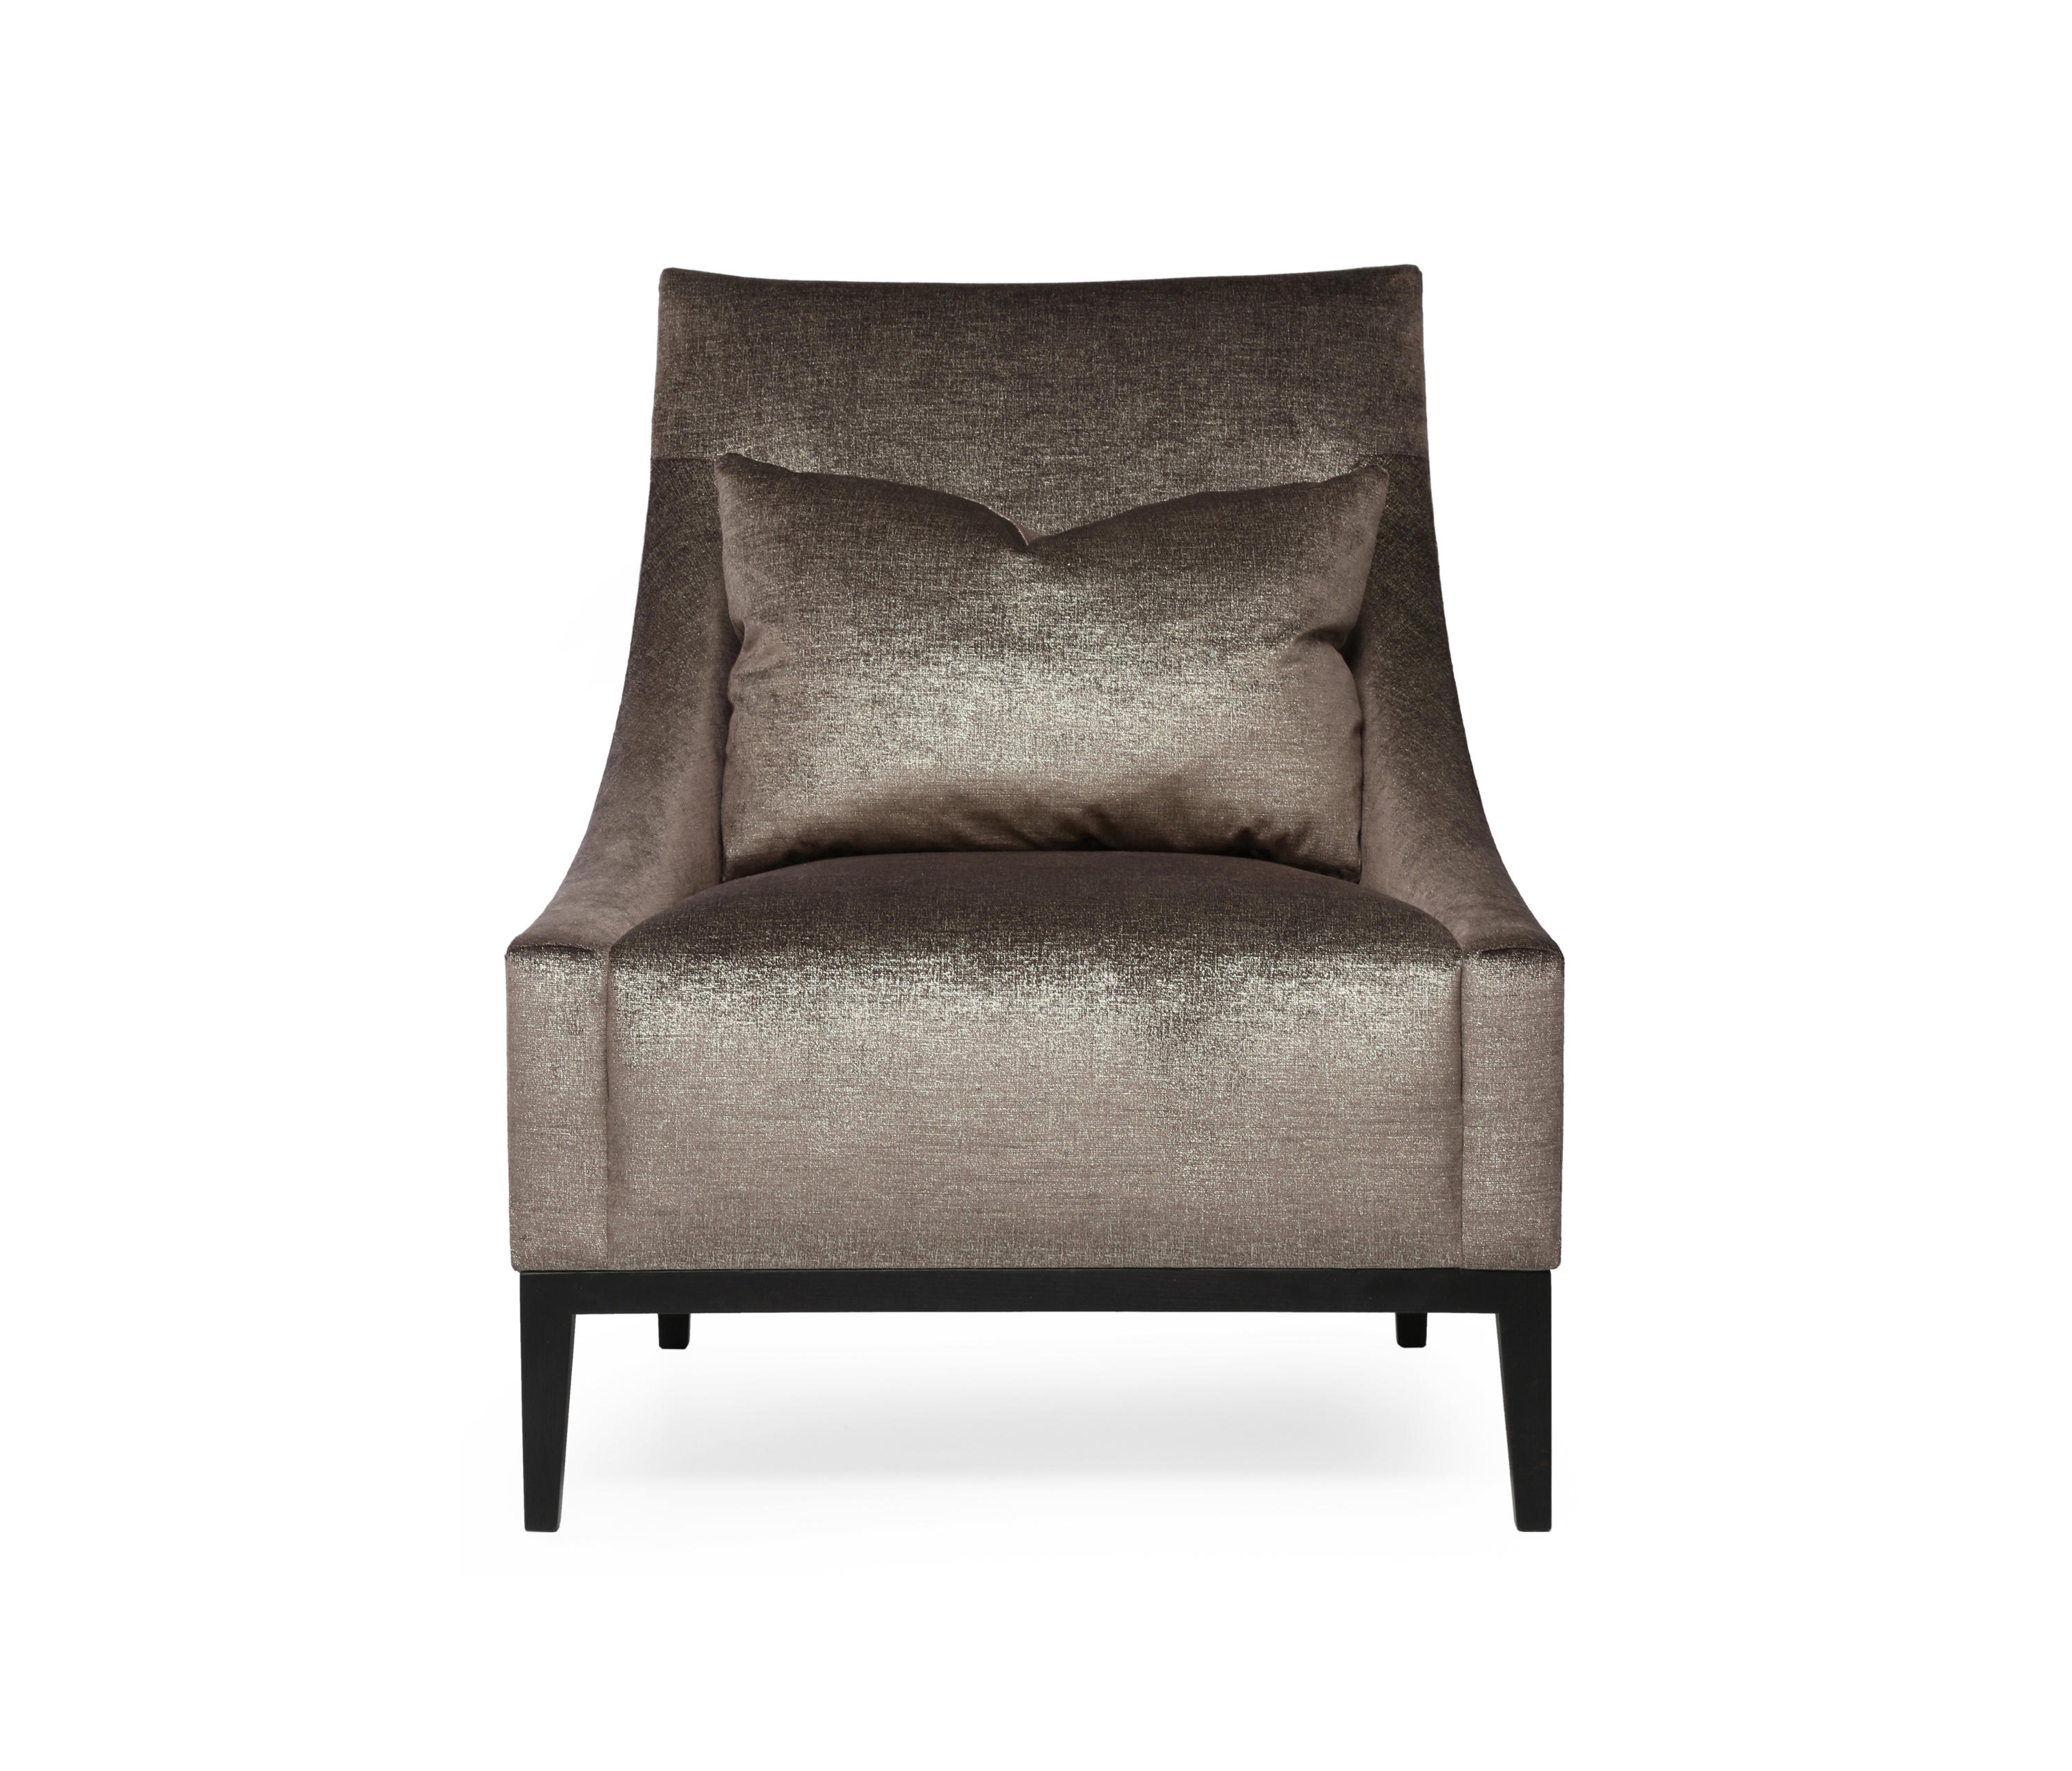 ... Valera Occasional Chair By The Sofa U0026 Chair Company Ltd | Lounge Chairs  ...